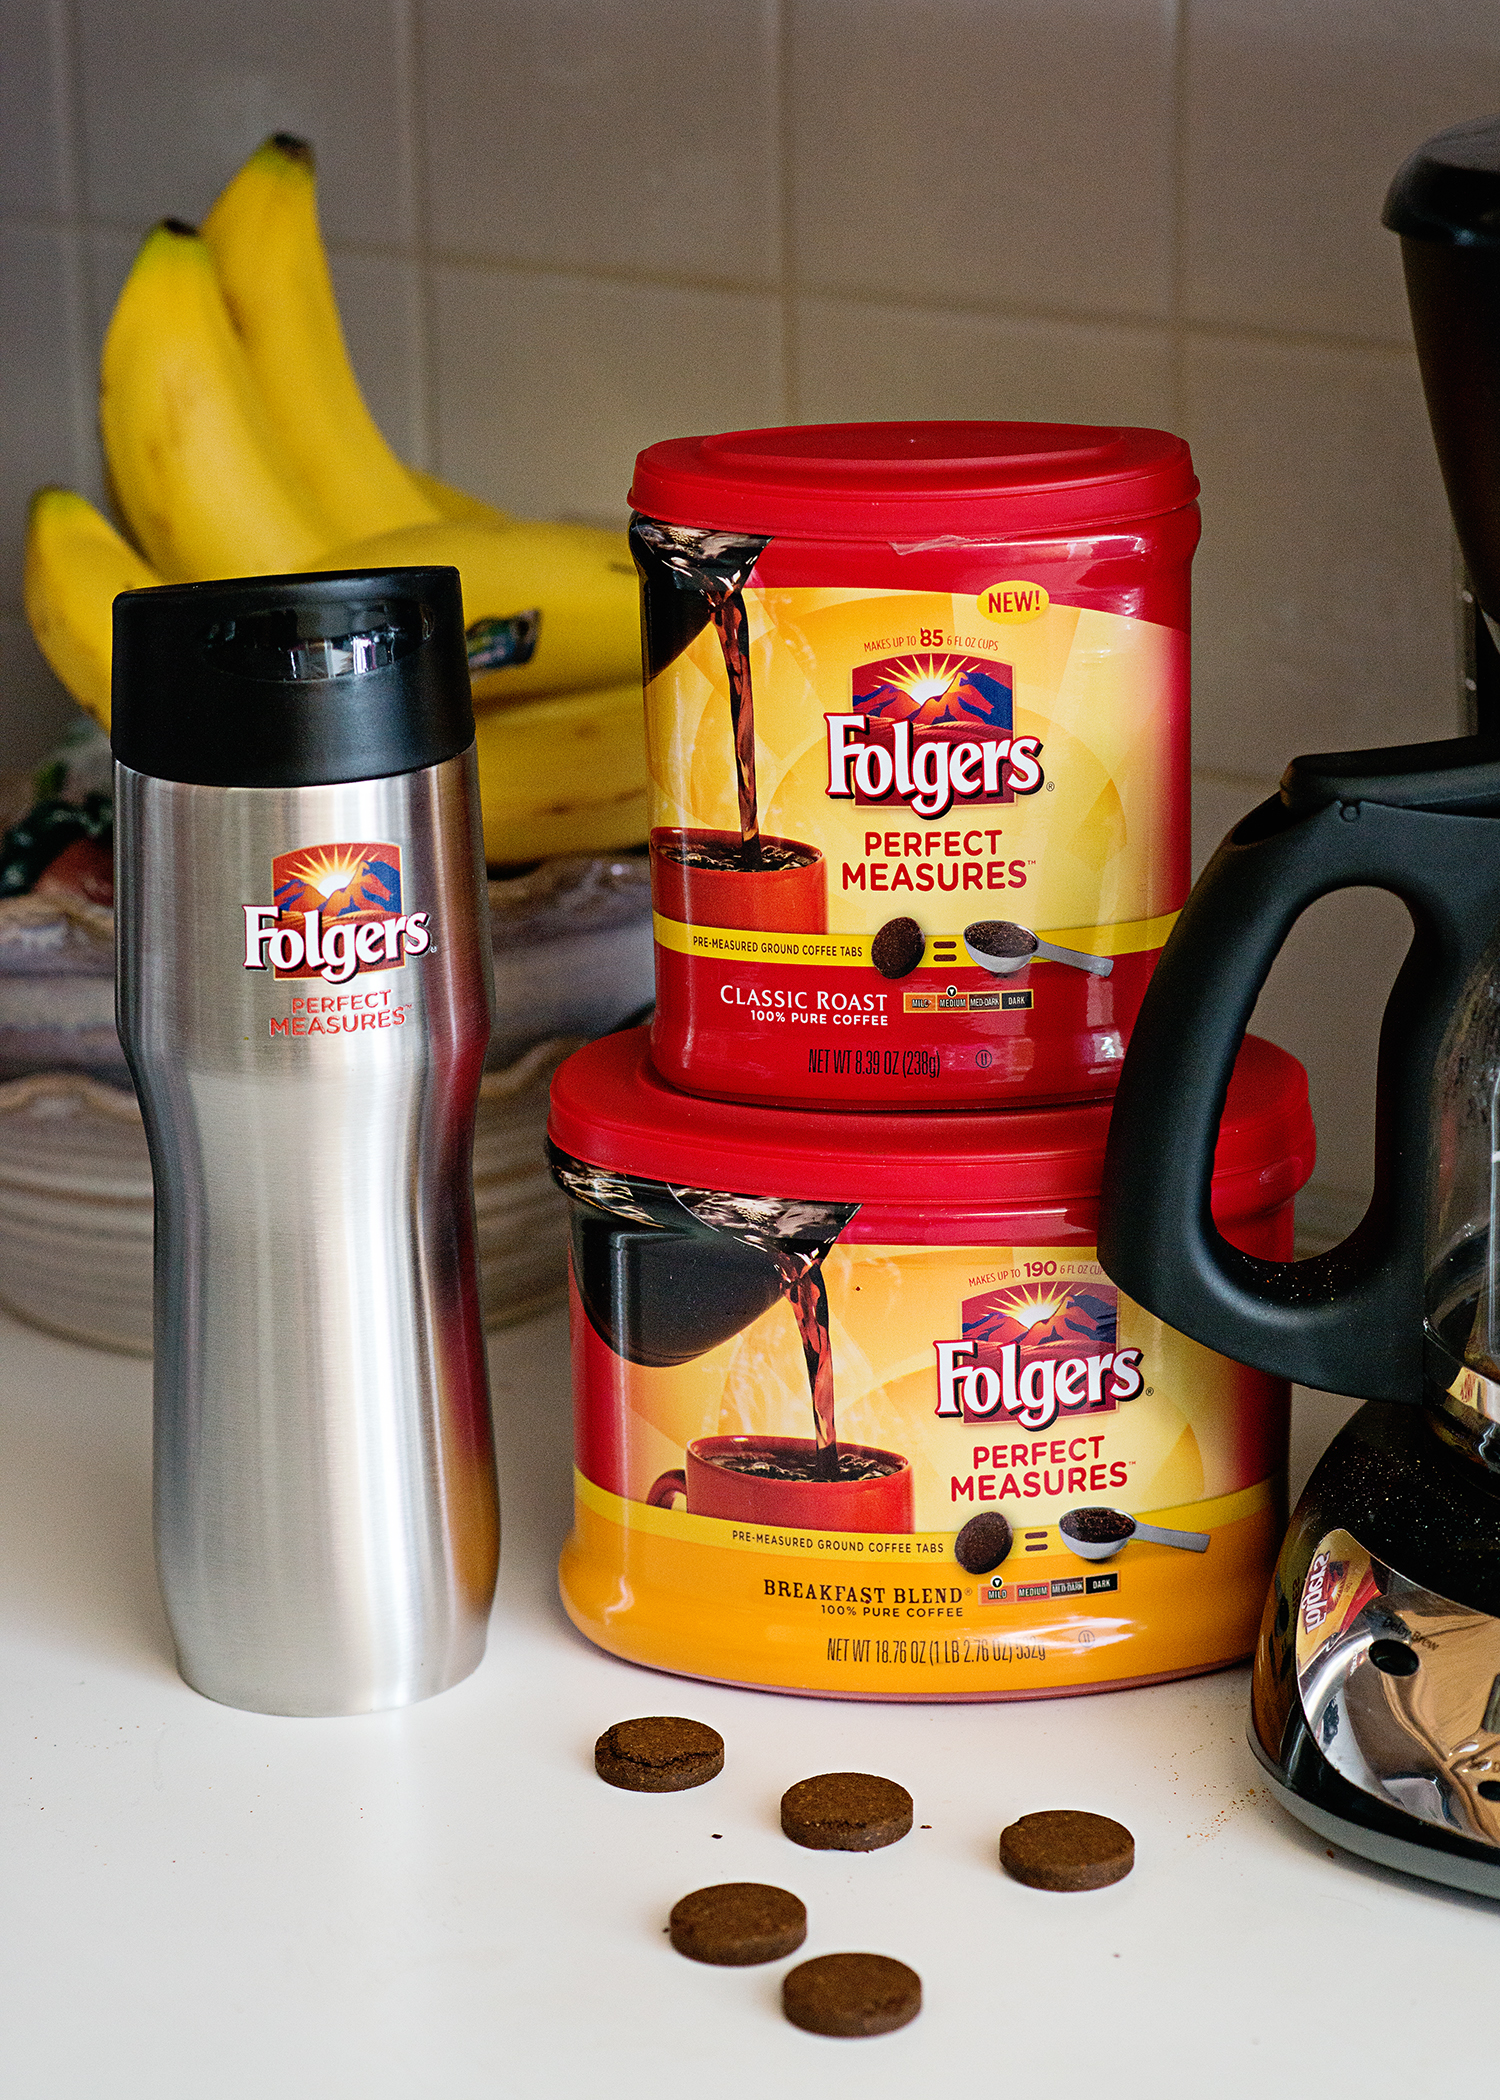 Ready for a Smooth Morning? Making Coffee Just Got Easier!